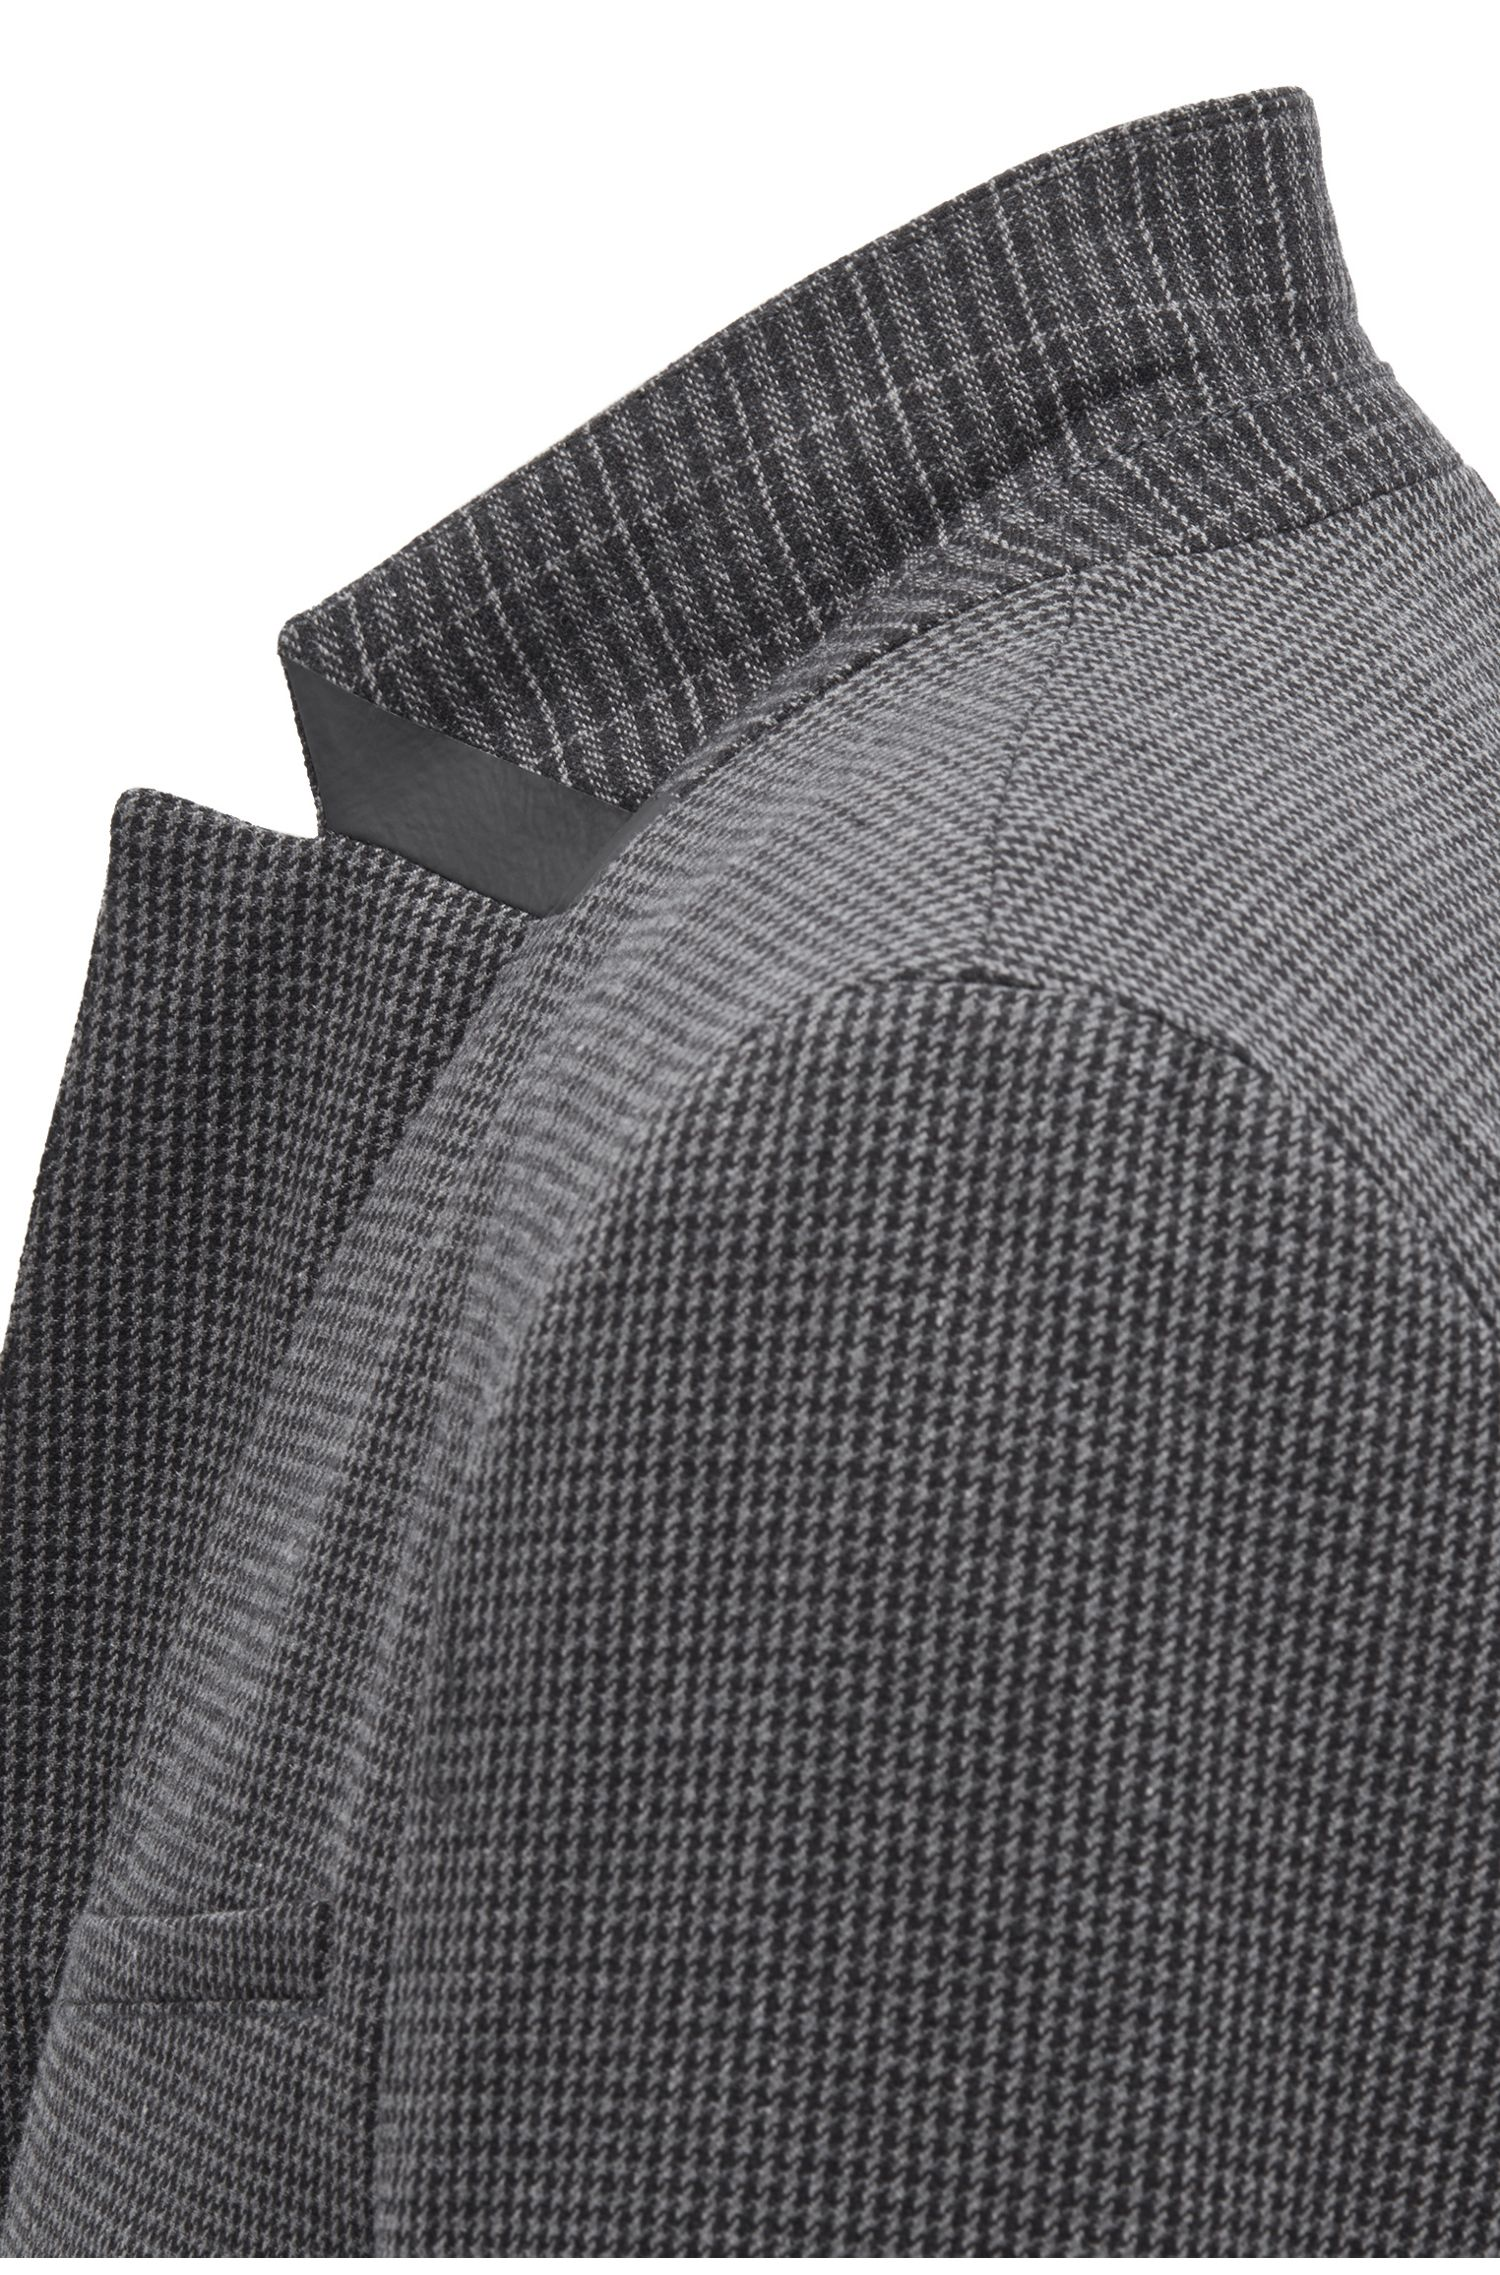 Slim-fit jacket in houndstooth Italian stretch fabric, Black